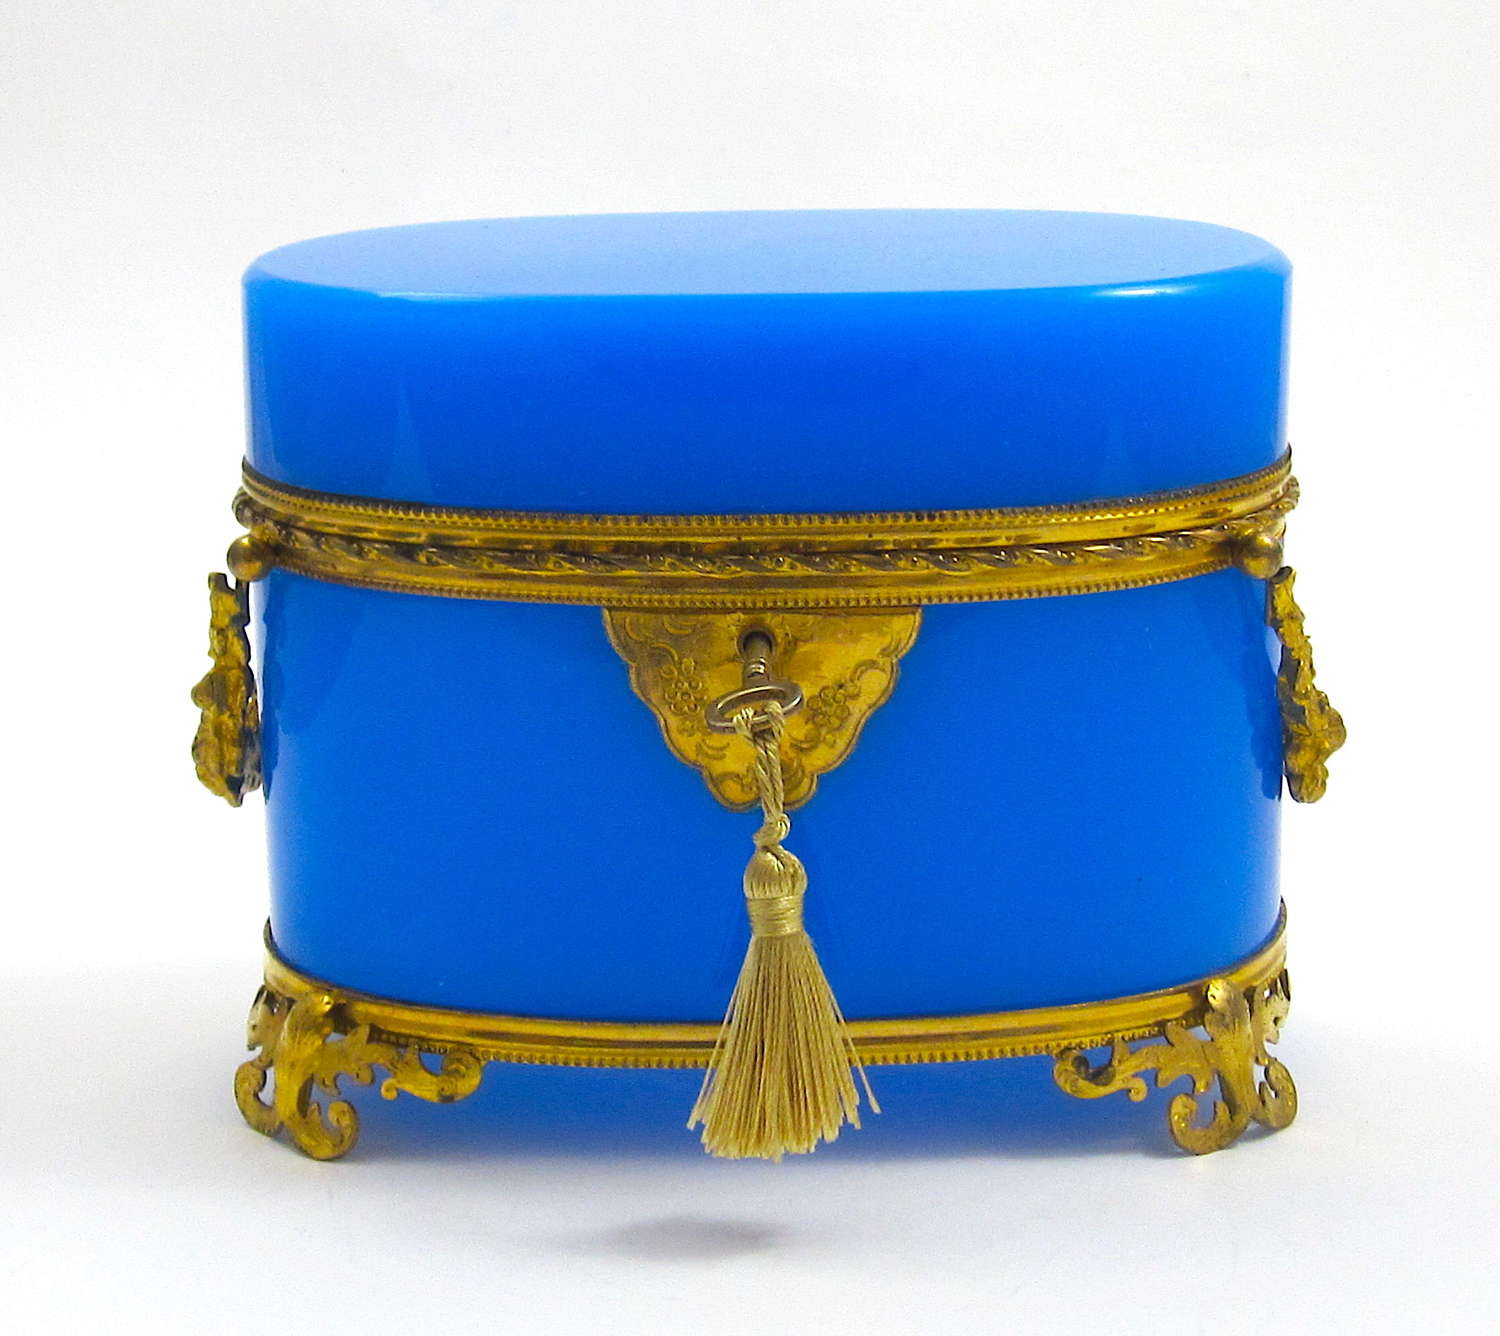 Large High Quality French Blue Opaline Glass Oval Casket Box.